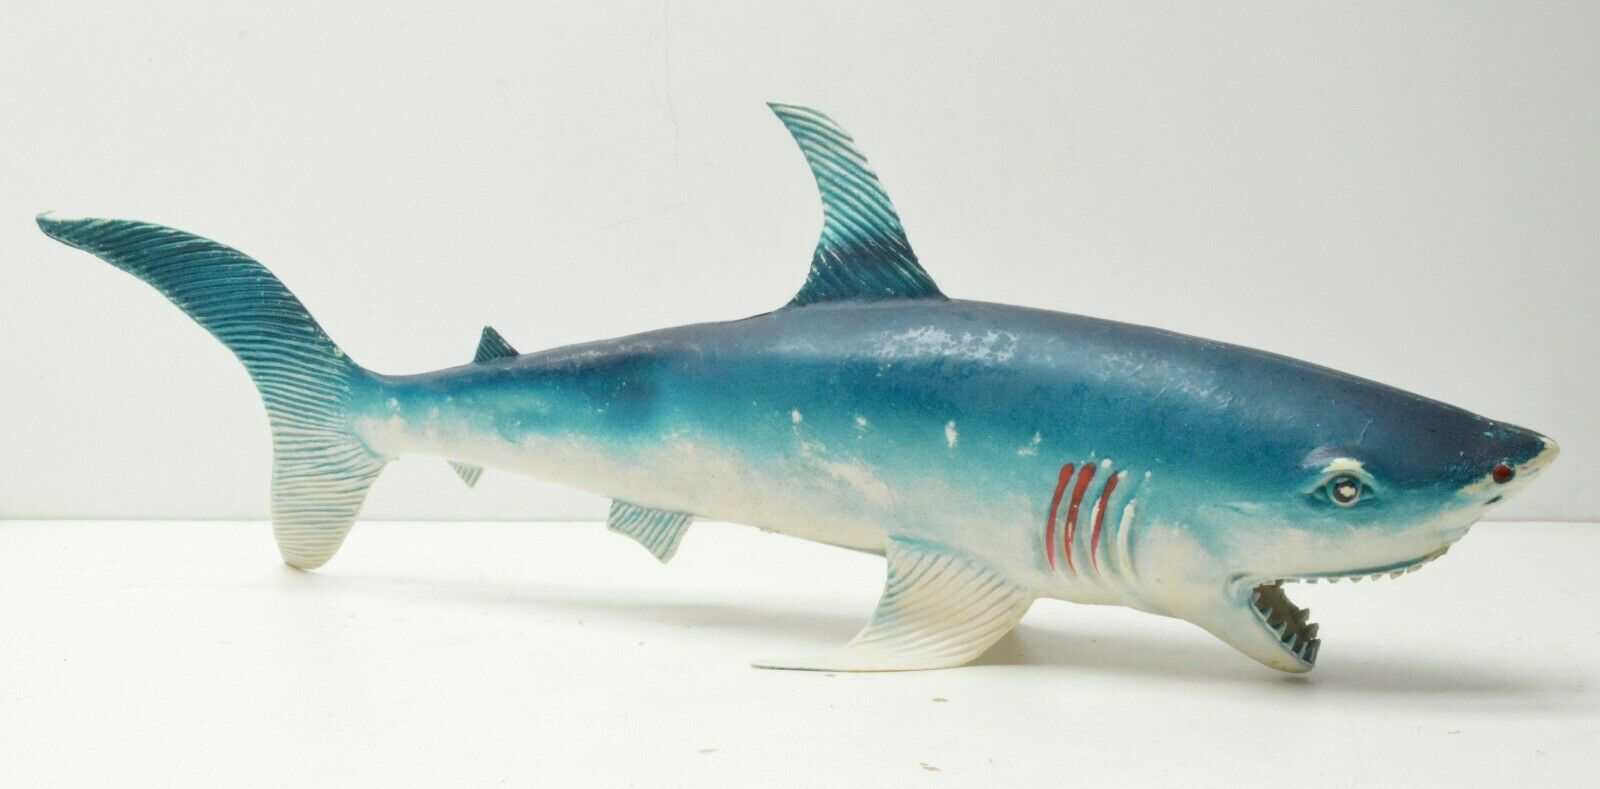 GREAT Weiß SHARK JAWS IMPERIAL TOYS FIGURE VINTAGE 15IN LONG 1983